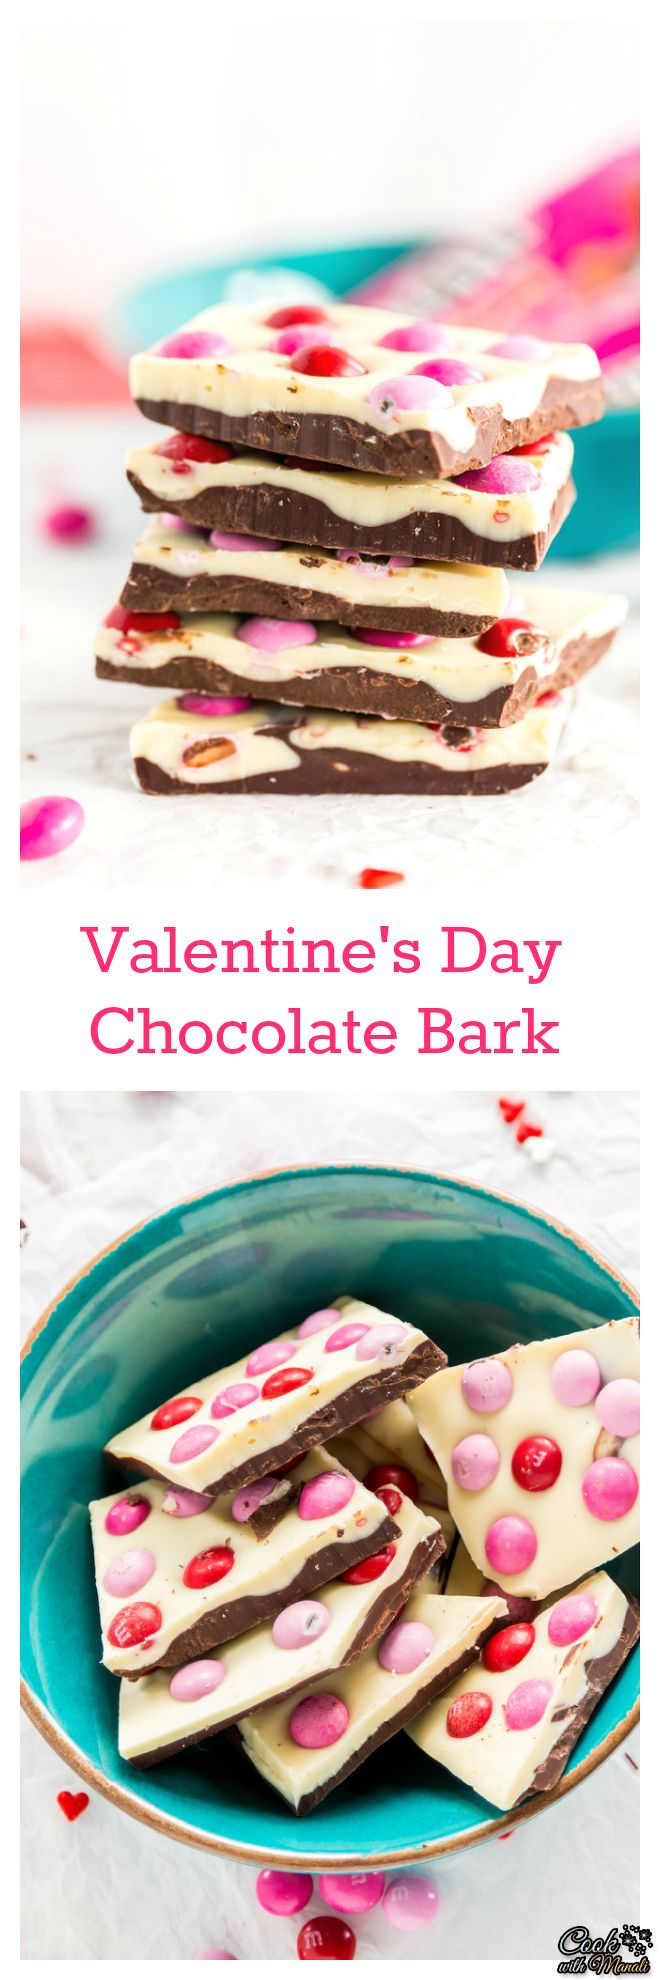 Easy Valentine's Day Chocolate Bark with layers of dark and white chocolate and topped with M&M's® Strawberry. The perfect little gift for your loved one! #chocolate #dessert #valentines